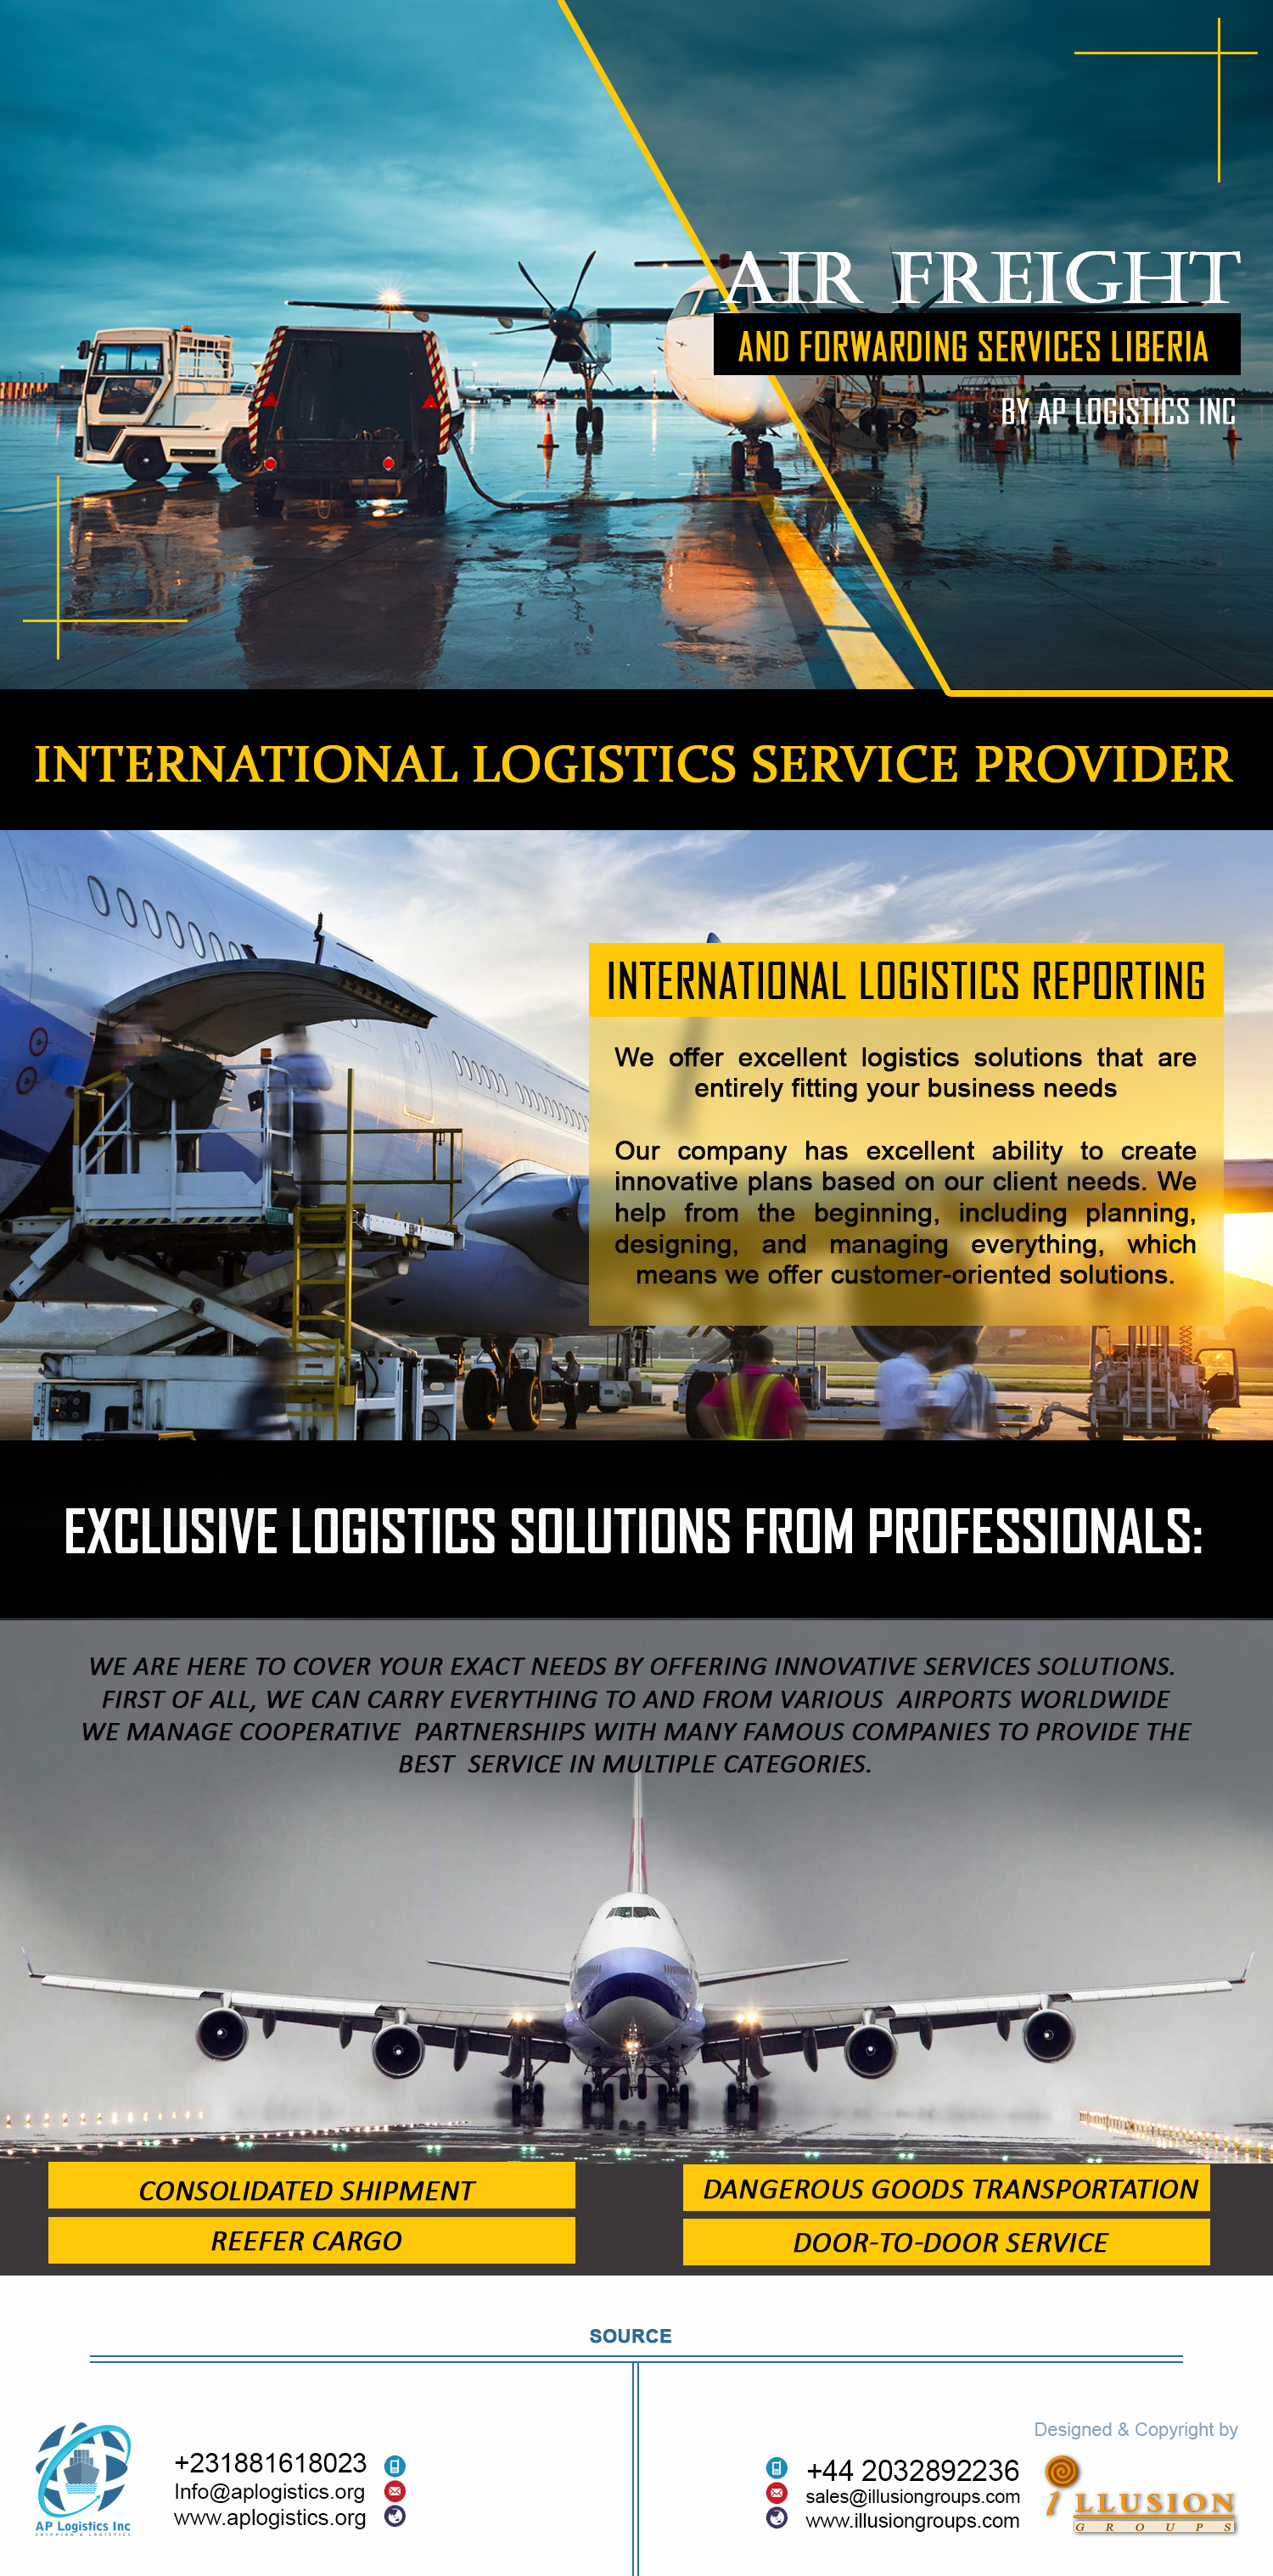 Hire The Best Transportation Services With Your Needs